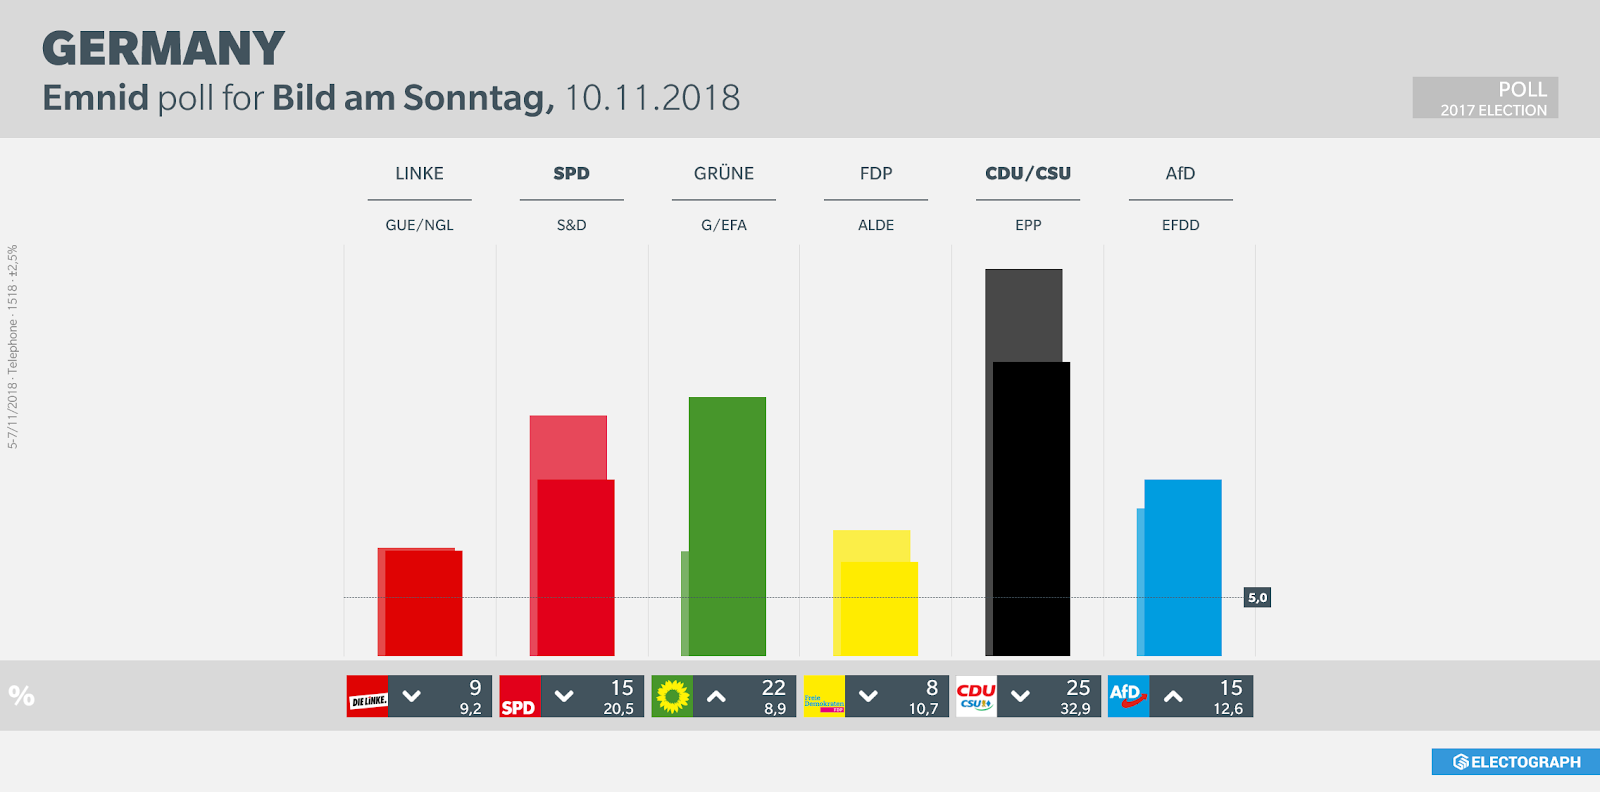 GERMANY: Emnid poll chart for Bild am Sonntag, November 2018